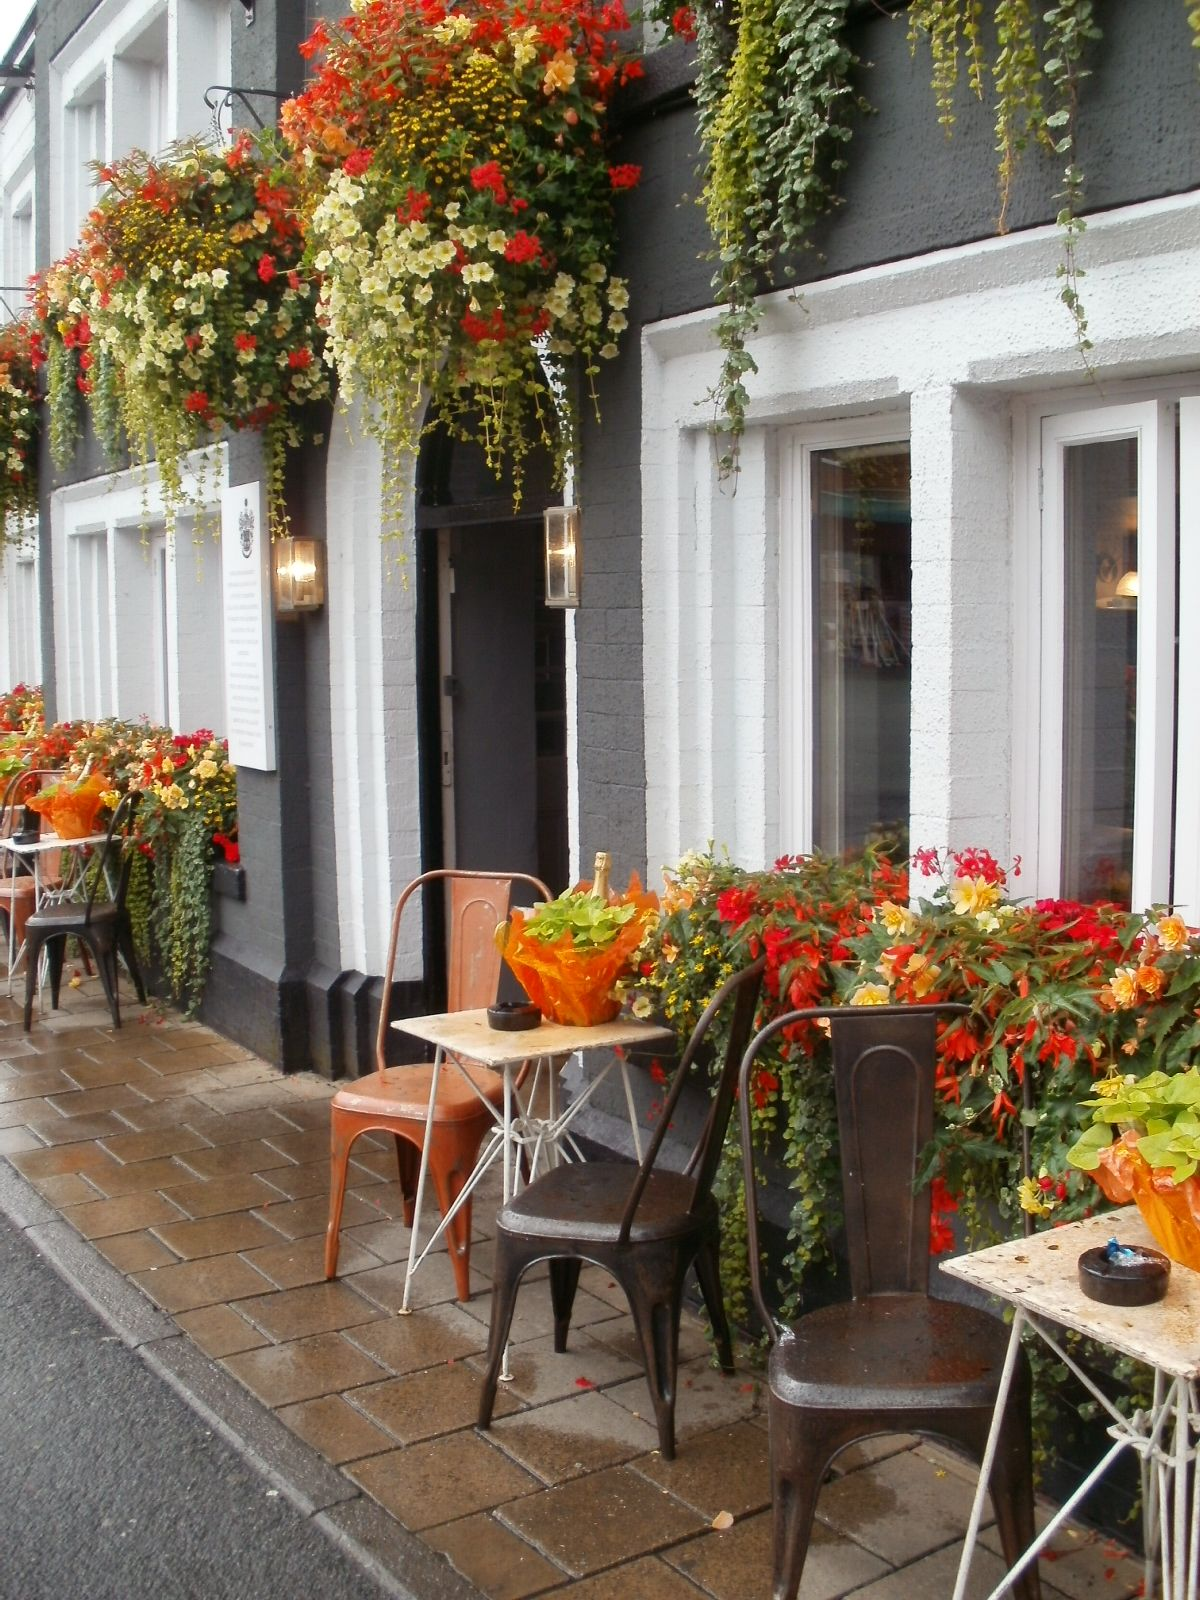 The Sessions House, Knutsford, Cheshire.   Flower planters ...